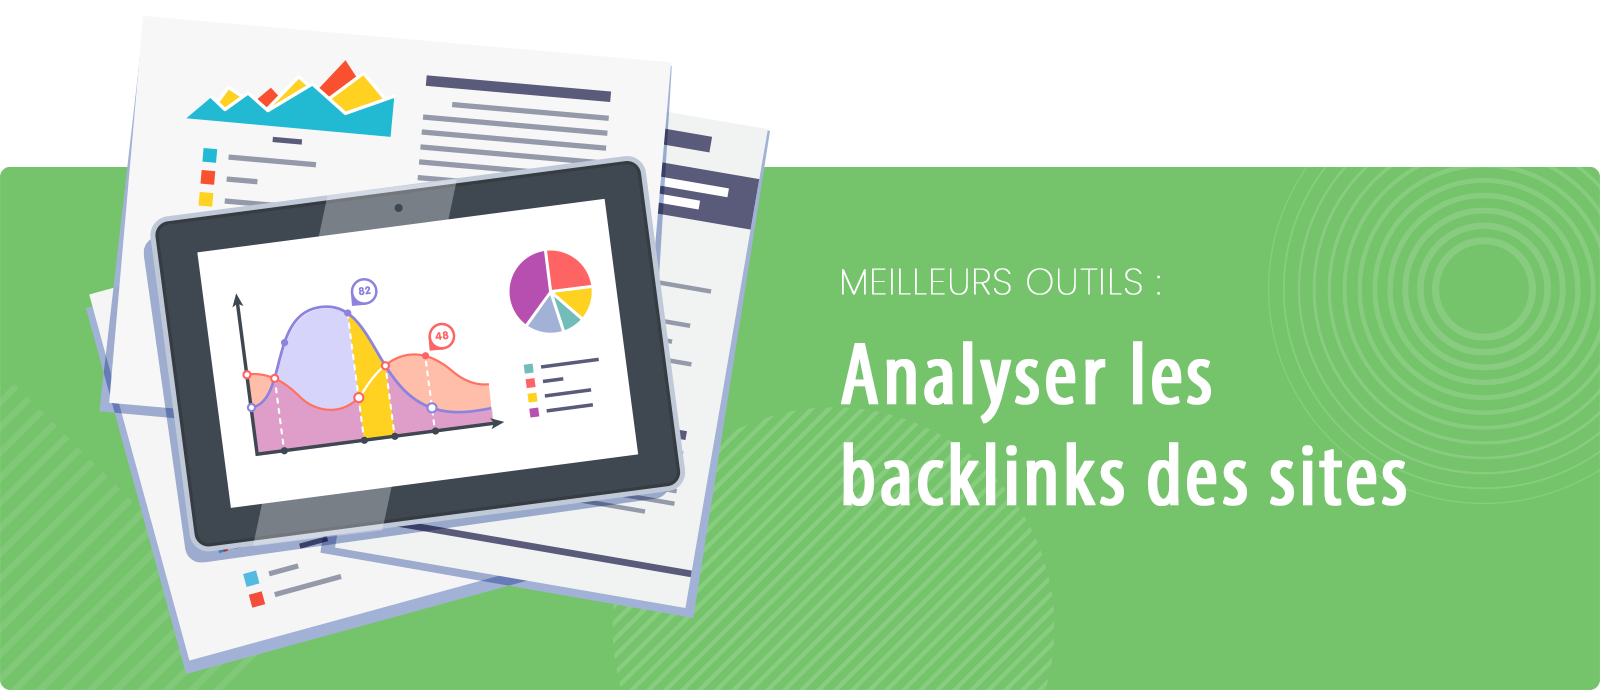 Analyser les backlinks des sites